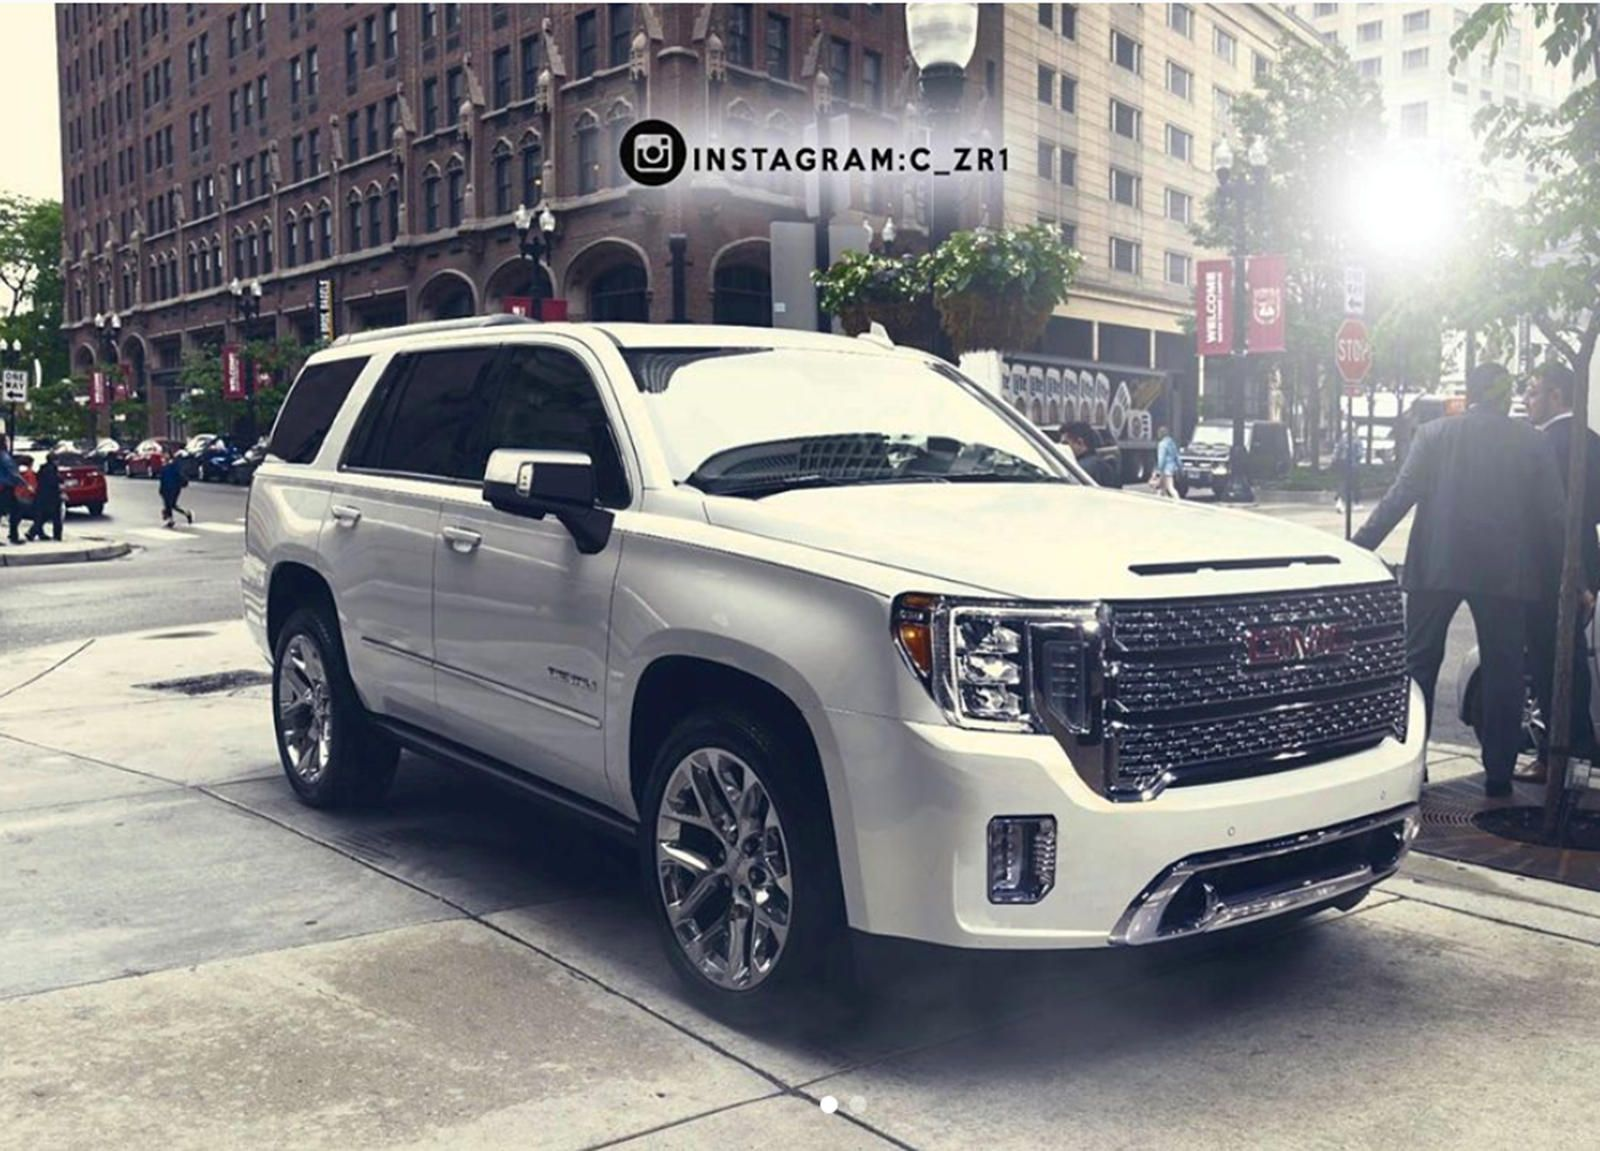 This Is When The New 2021 Gmc Yukon Will Debut Gmc Yukon Gmc Chevrolet Tahoe